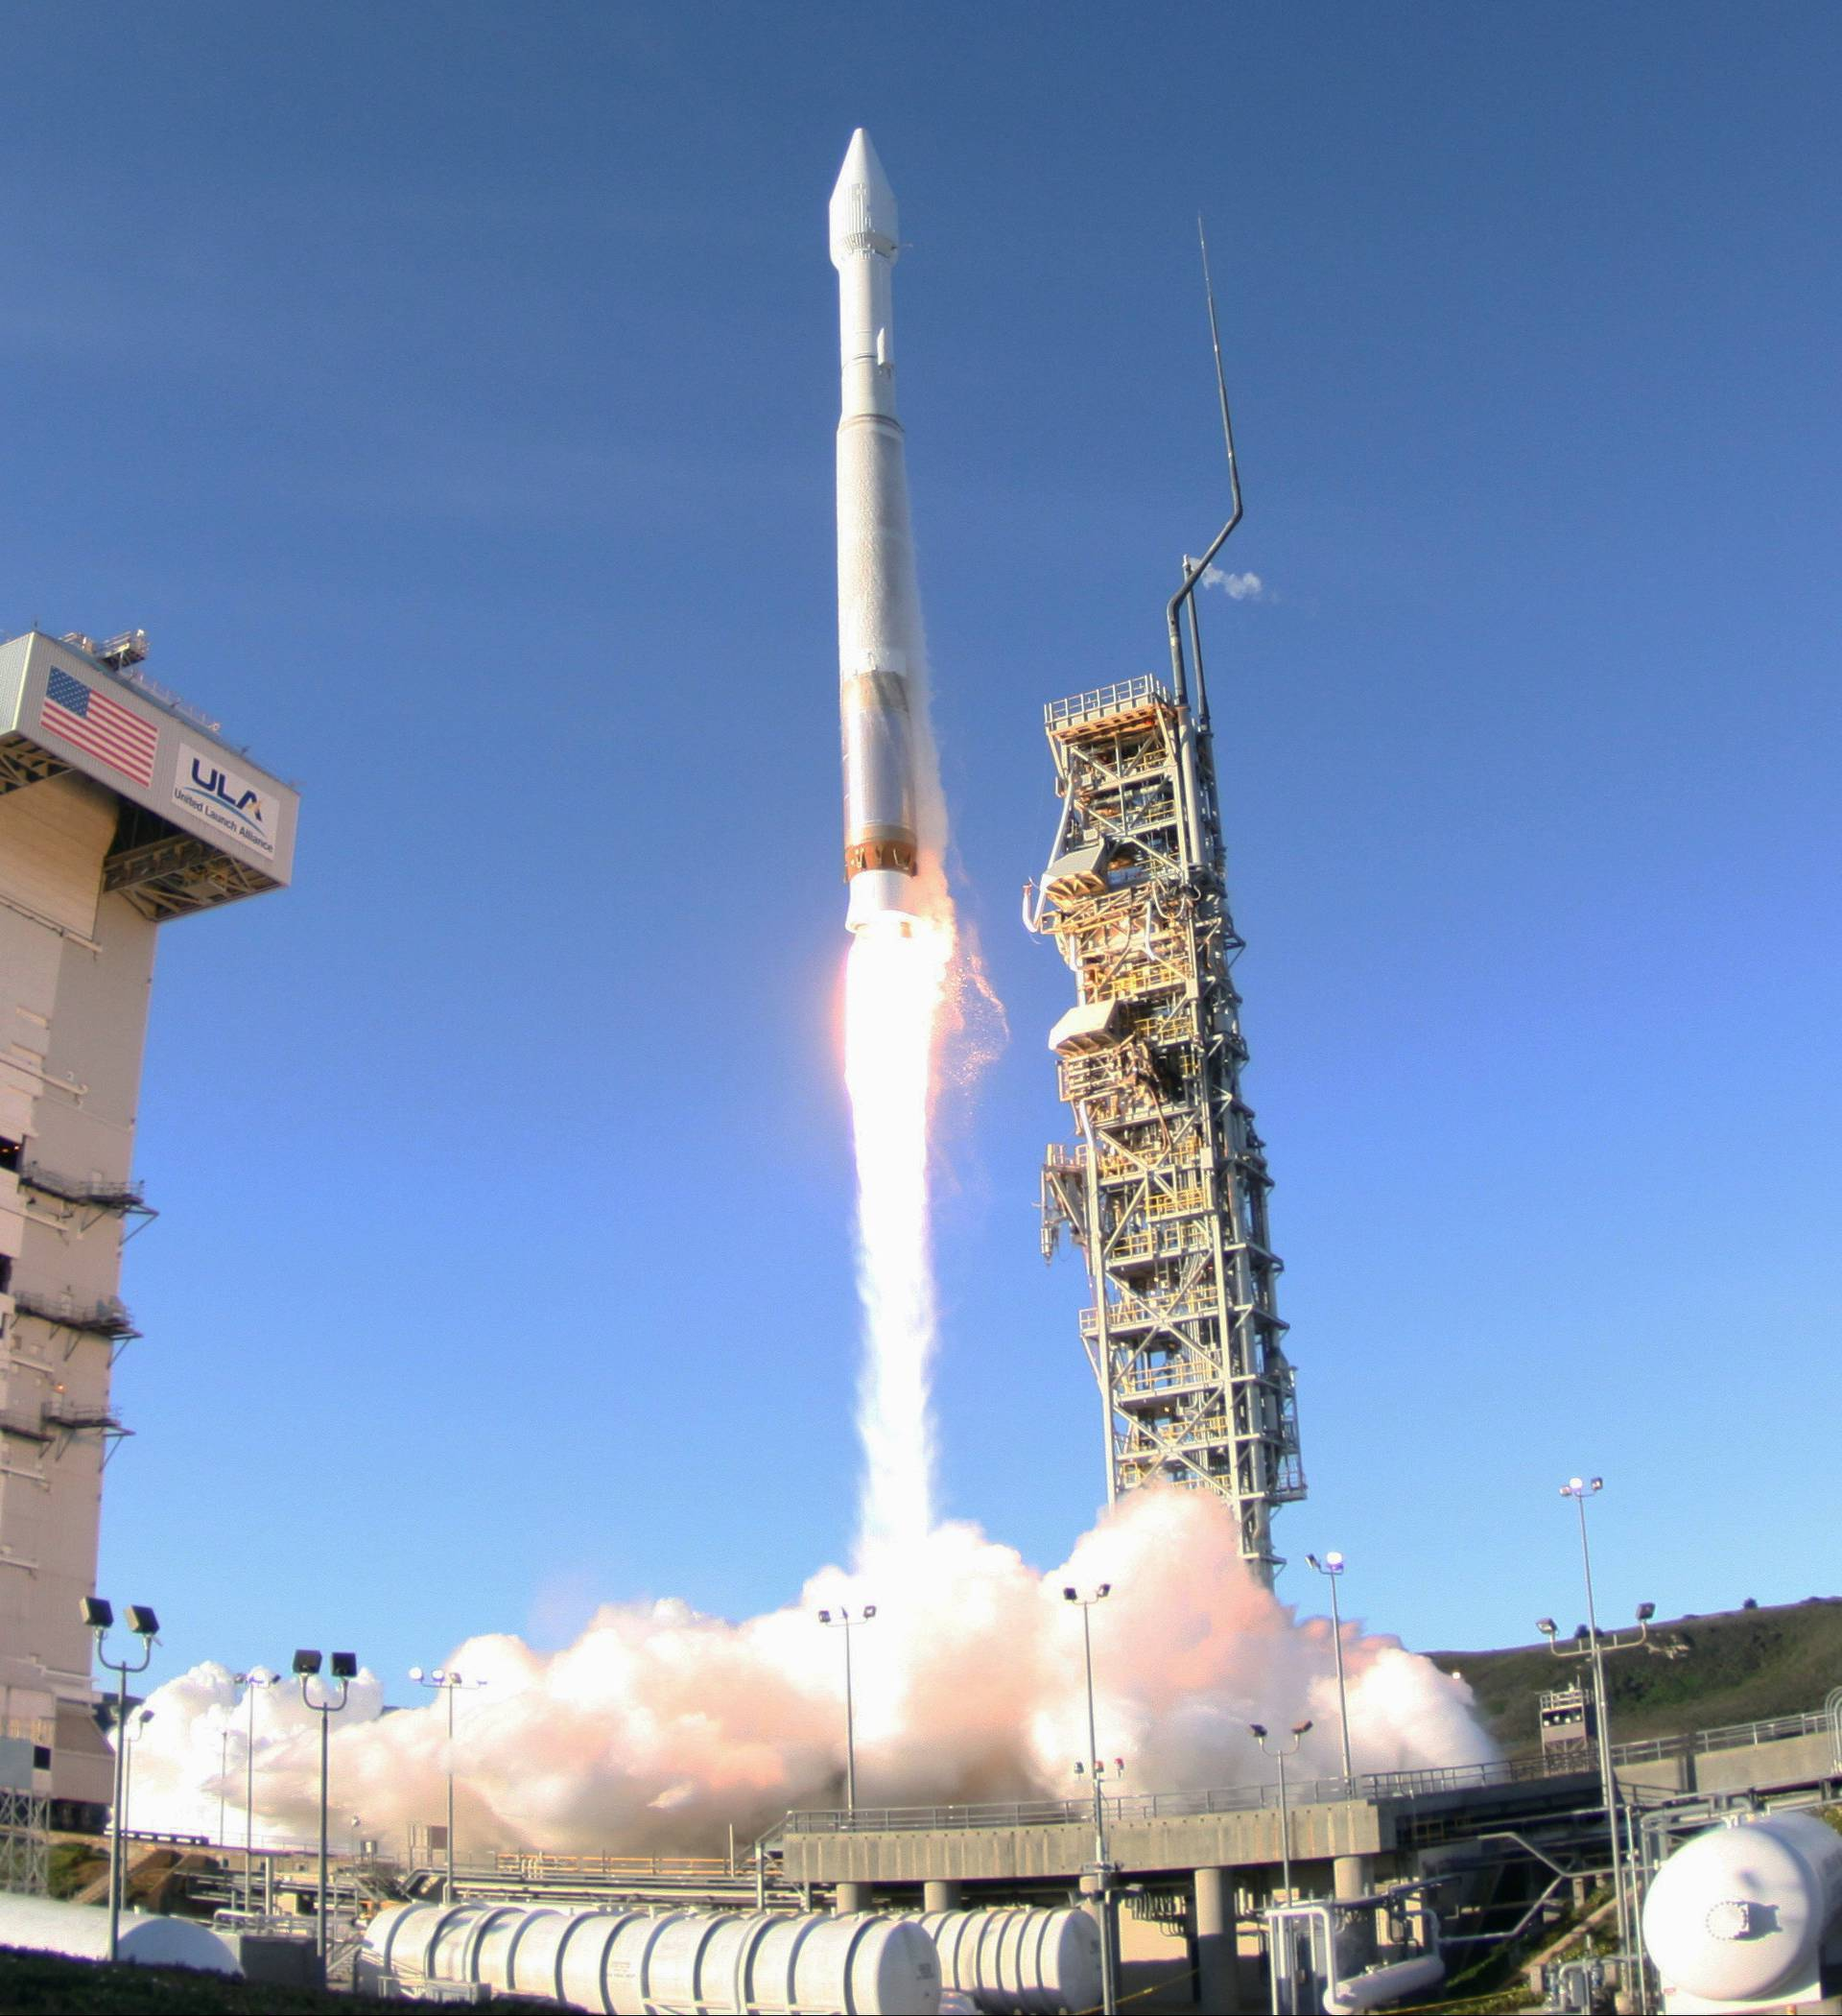 FILE PHOTO: An Atlas 5 ULA (United Launch Alliance) rocket carrying a satellite for the Defense Meteorological Satellite Program is launched from Vandenberg Air Force Base in California